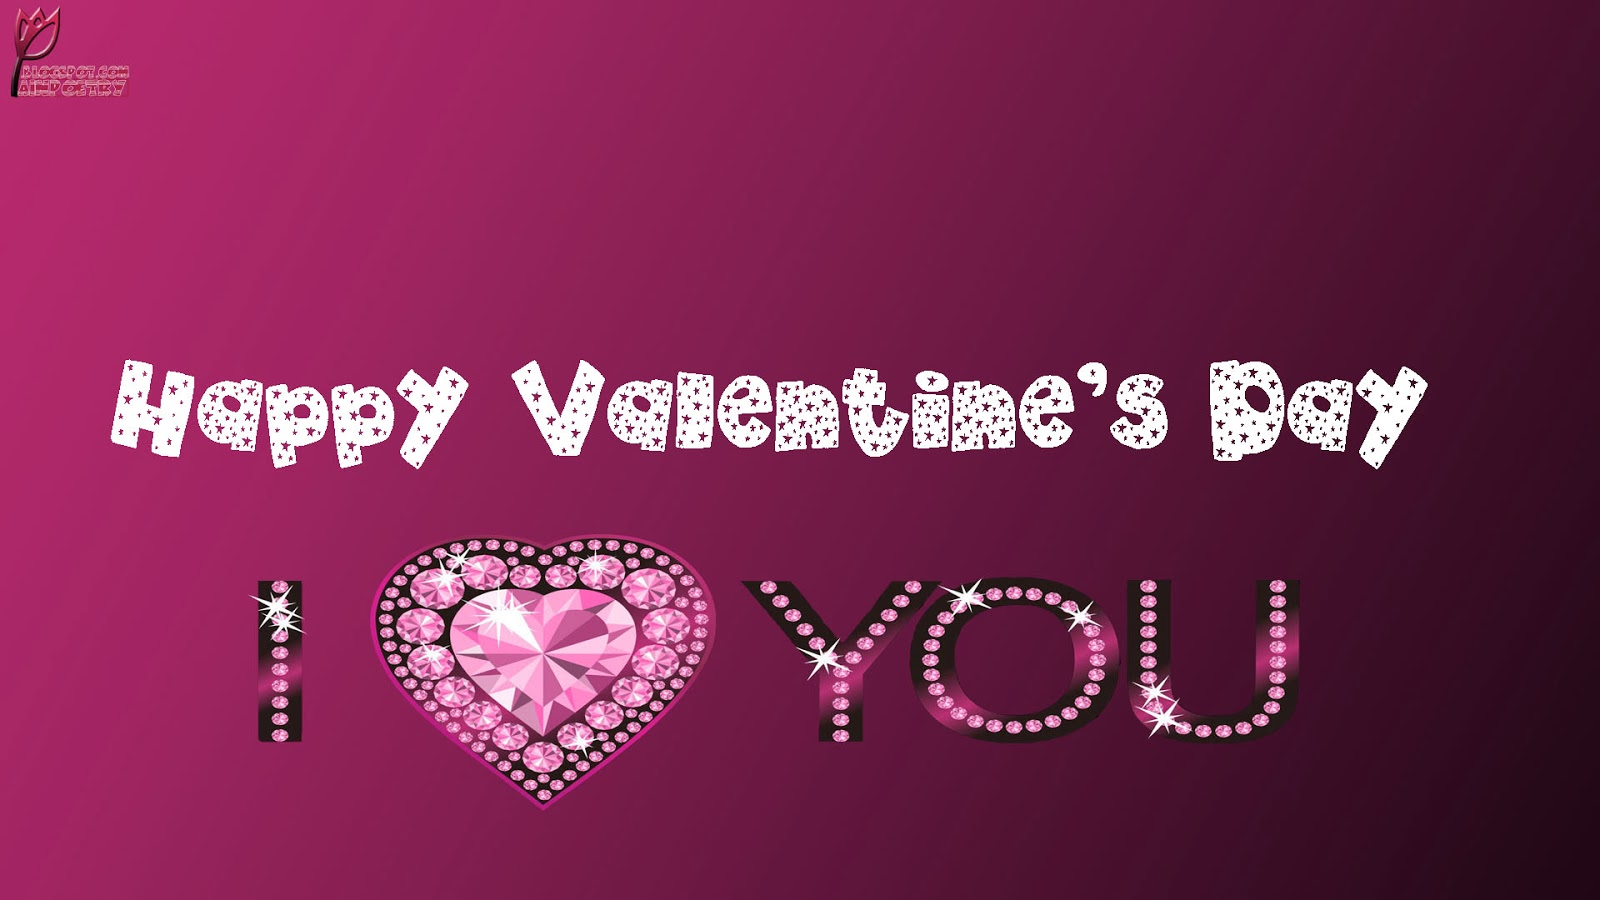 Happy-Valentine's-Day-Wishes-Wallpaper-For Lovers-i-Love-You-HD-Wide